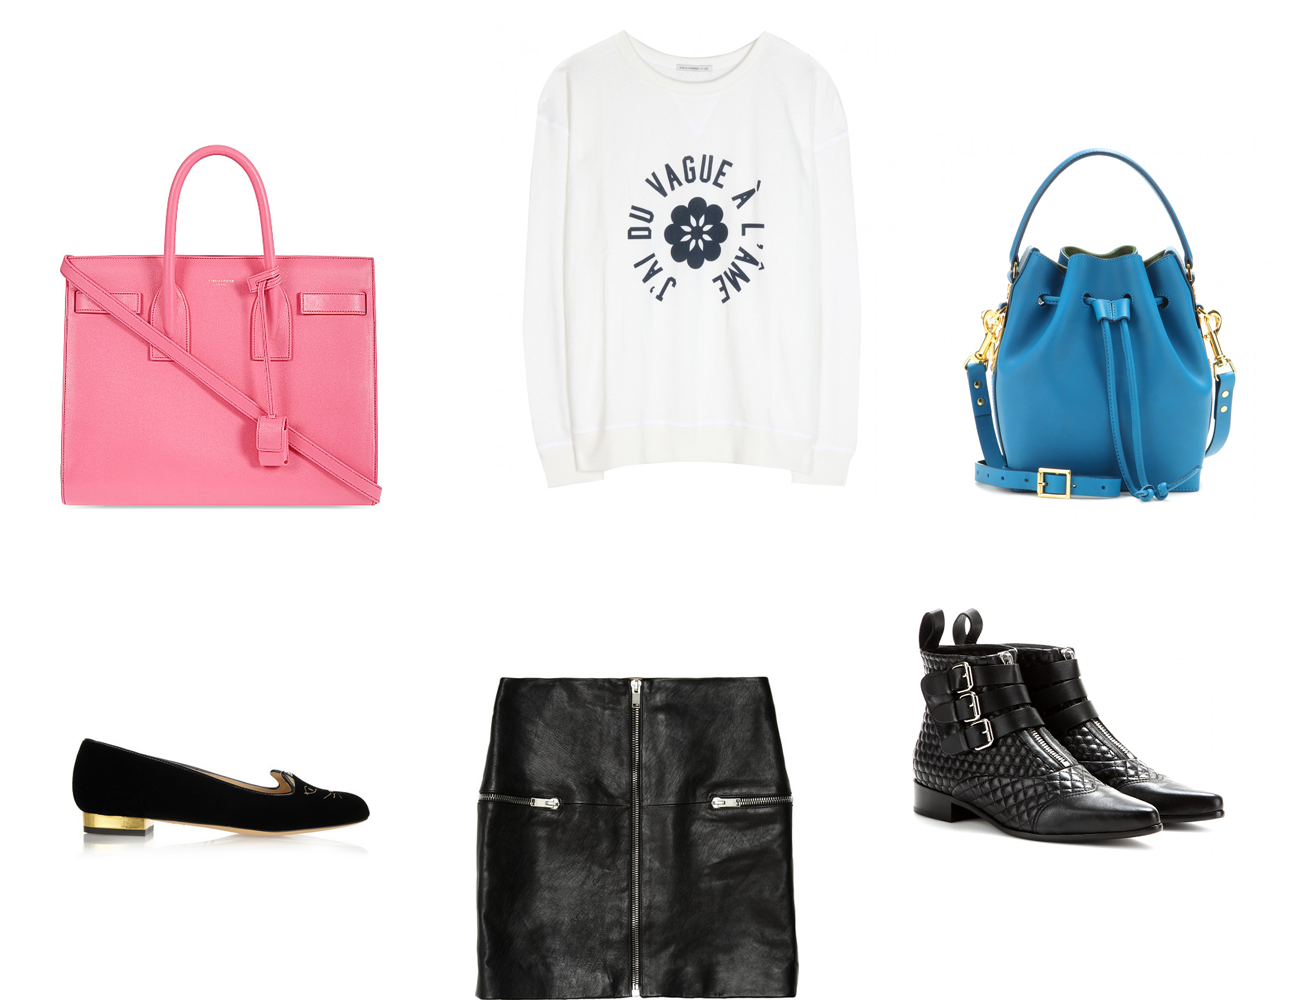 wishlist, fashion blogger, london, saint laurent, victoria beckham, alexa chung, cire trudon, sophie hulme, jbrand